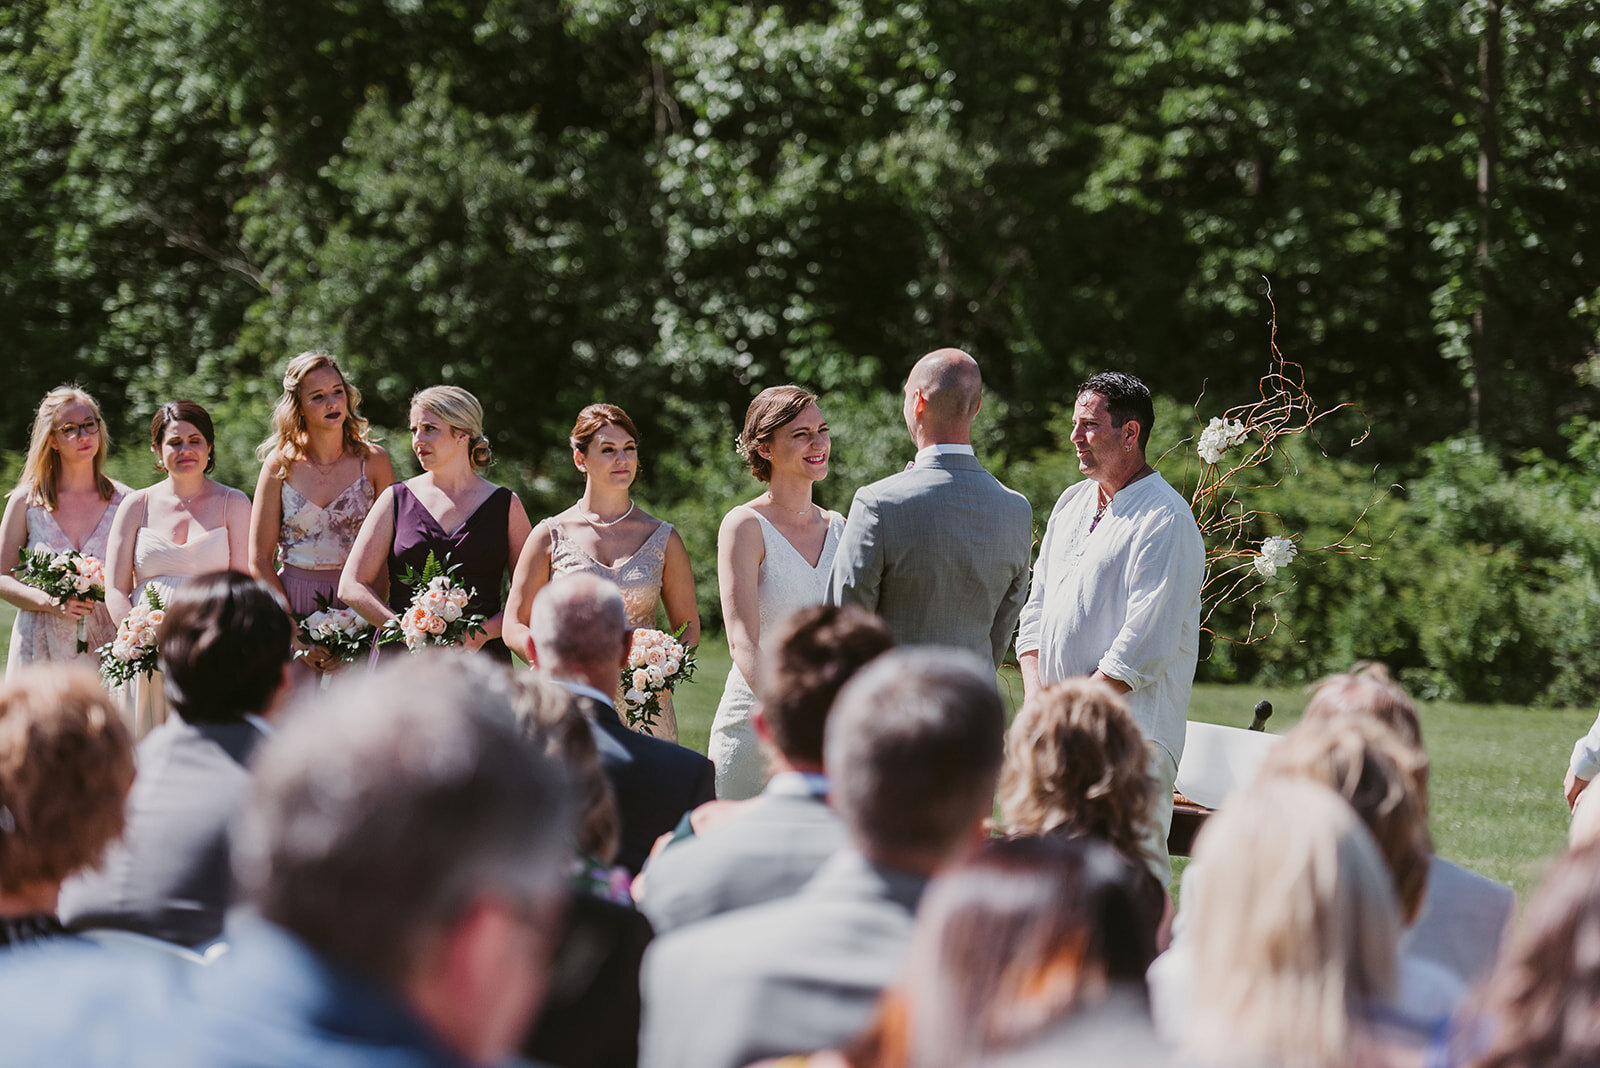 Matt+Katie_WEDDING_MJPHOTO2019-399_websize.jpg